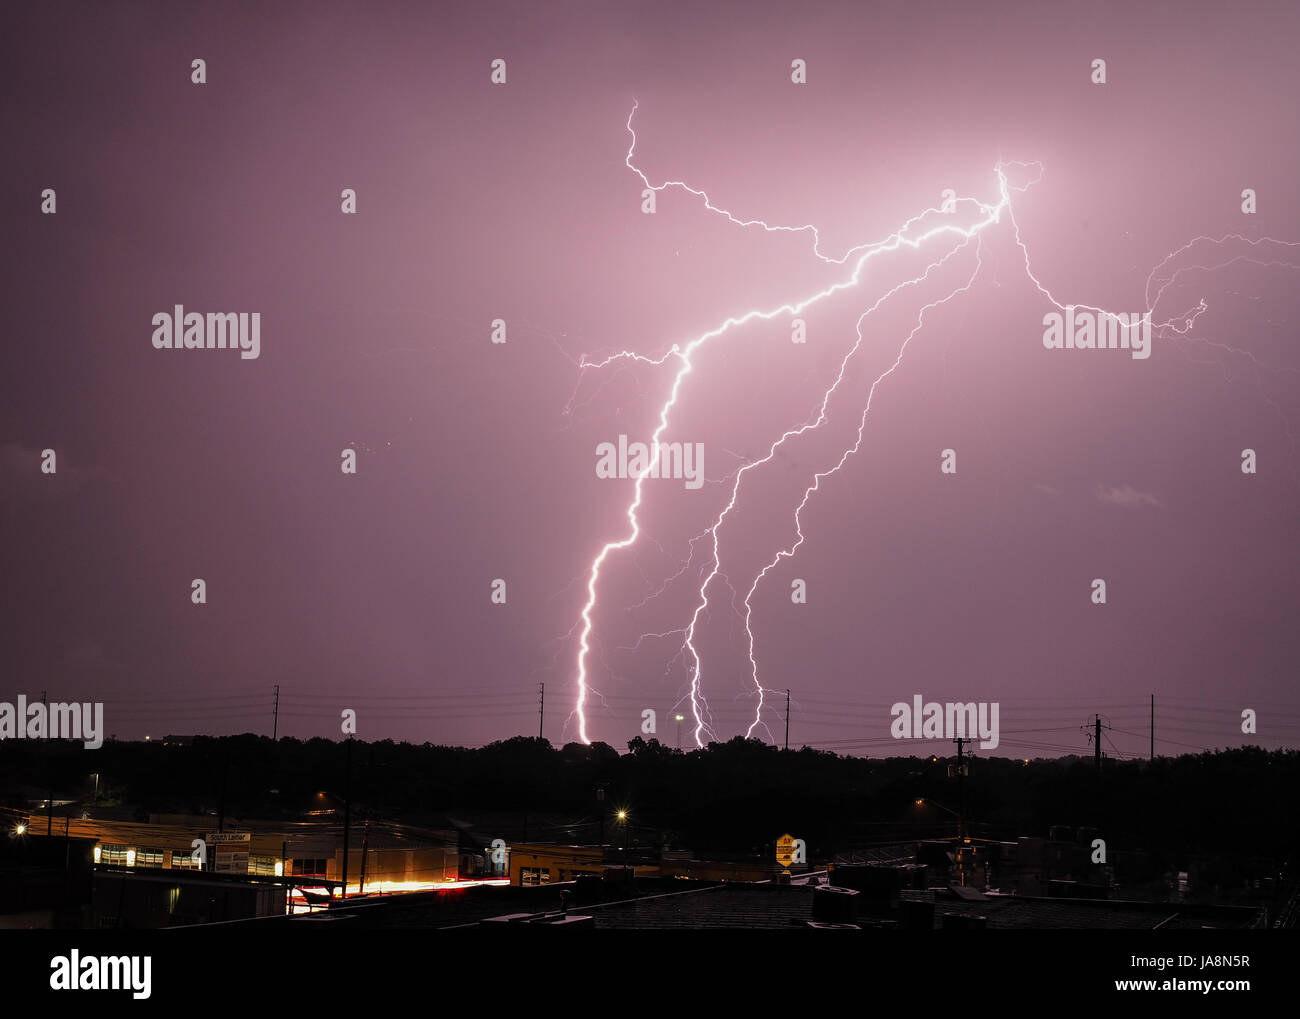 Multiple lightning bolts from a single source strike at night Stock Photo